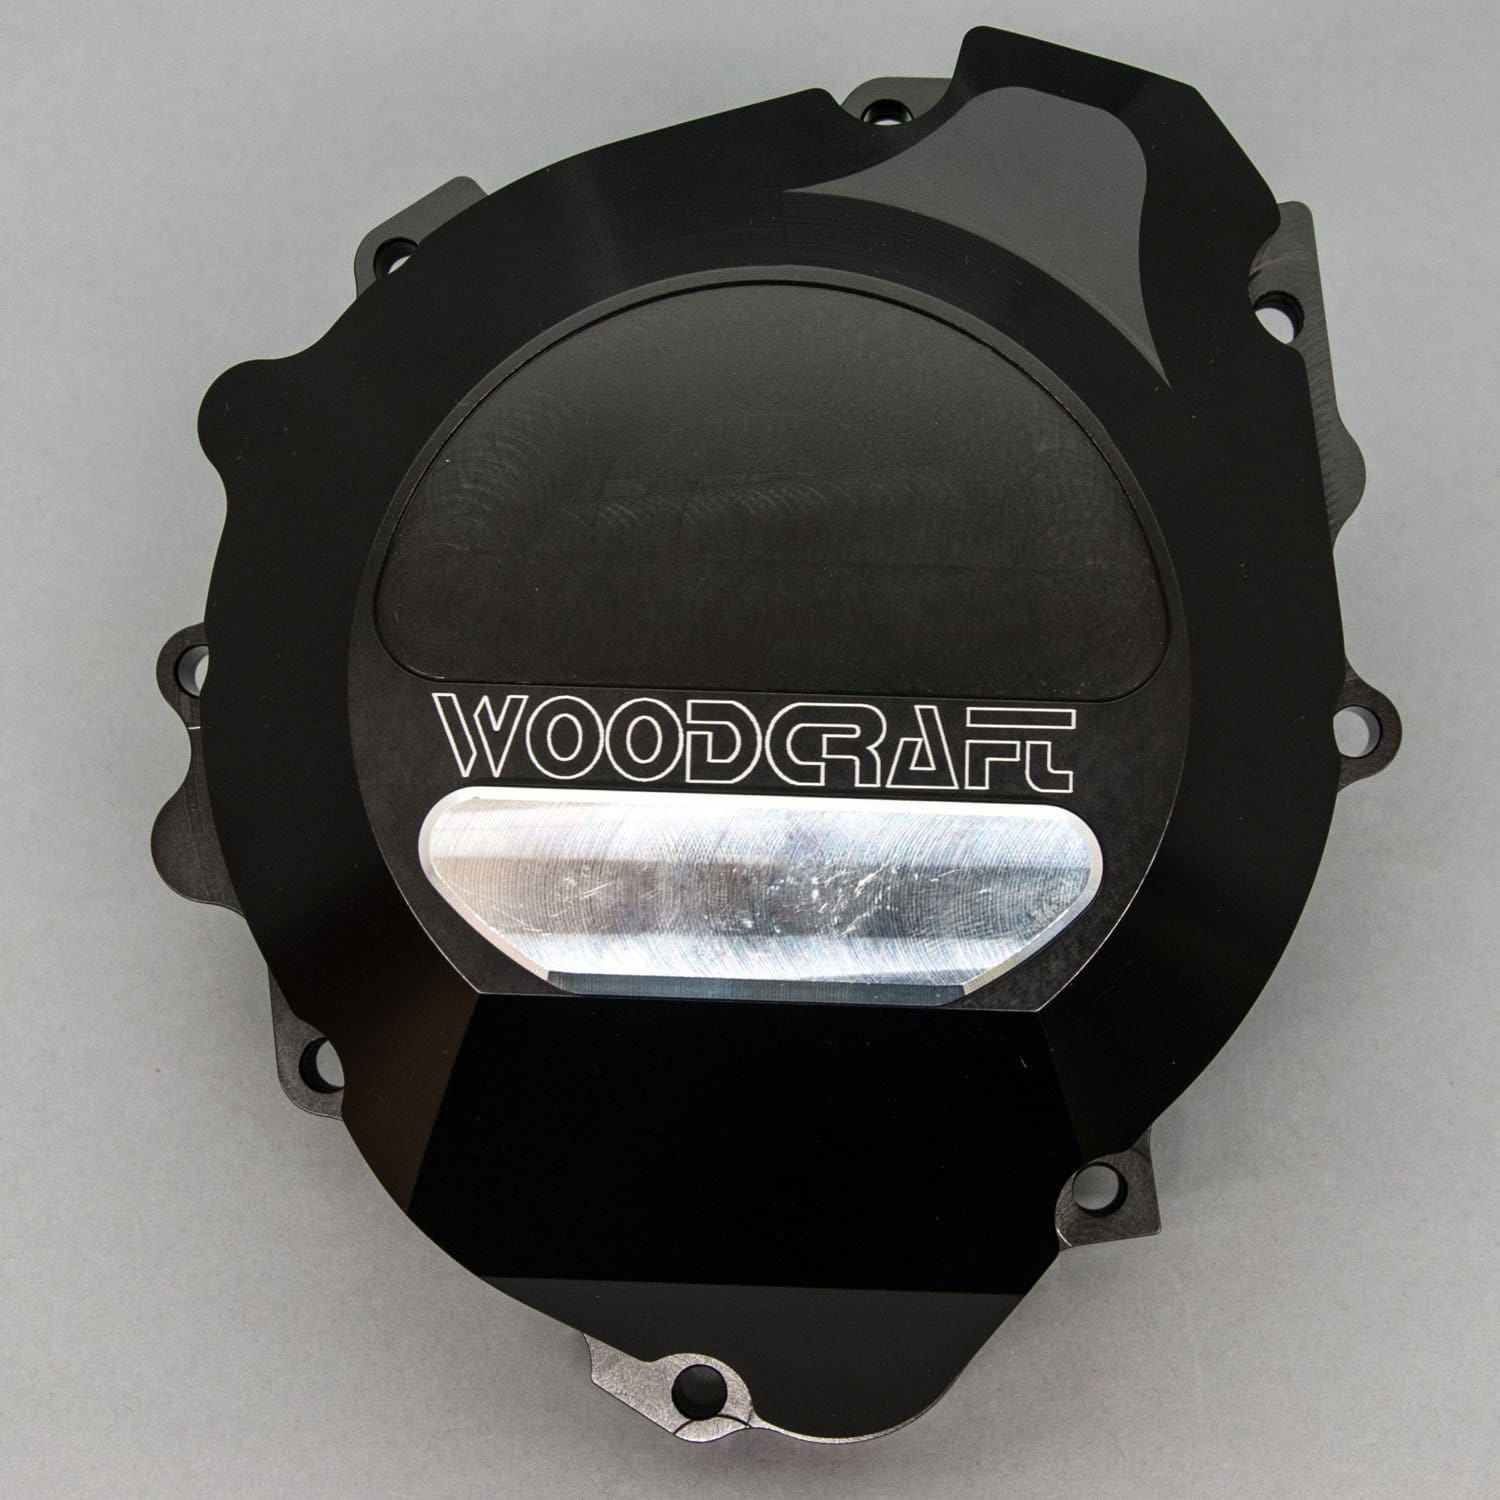 60-0335LB Honda CBR600RR LHS Stator Cover (Use Semi-Dry Liquid Gasket) - Woodcraft Technologies - Motorcycle Parts